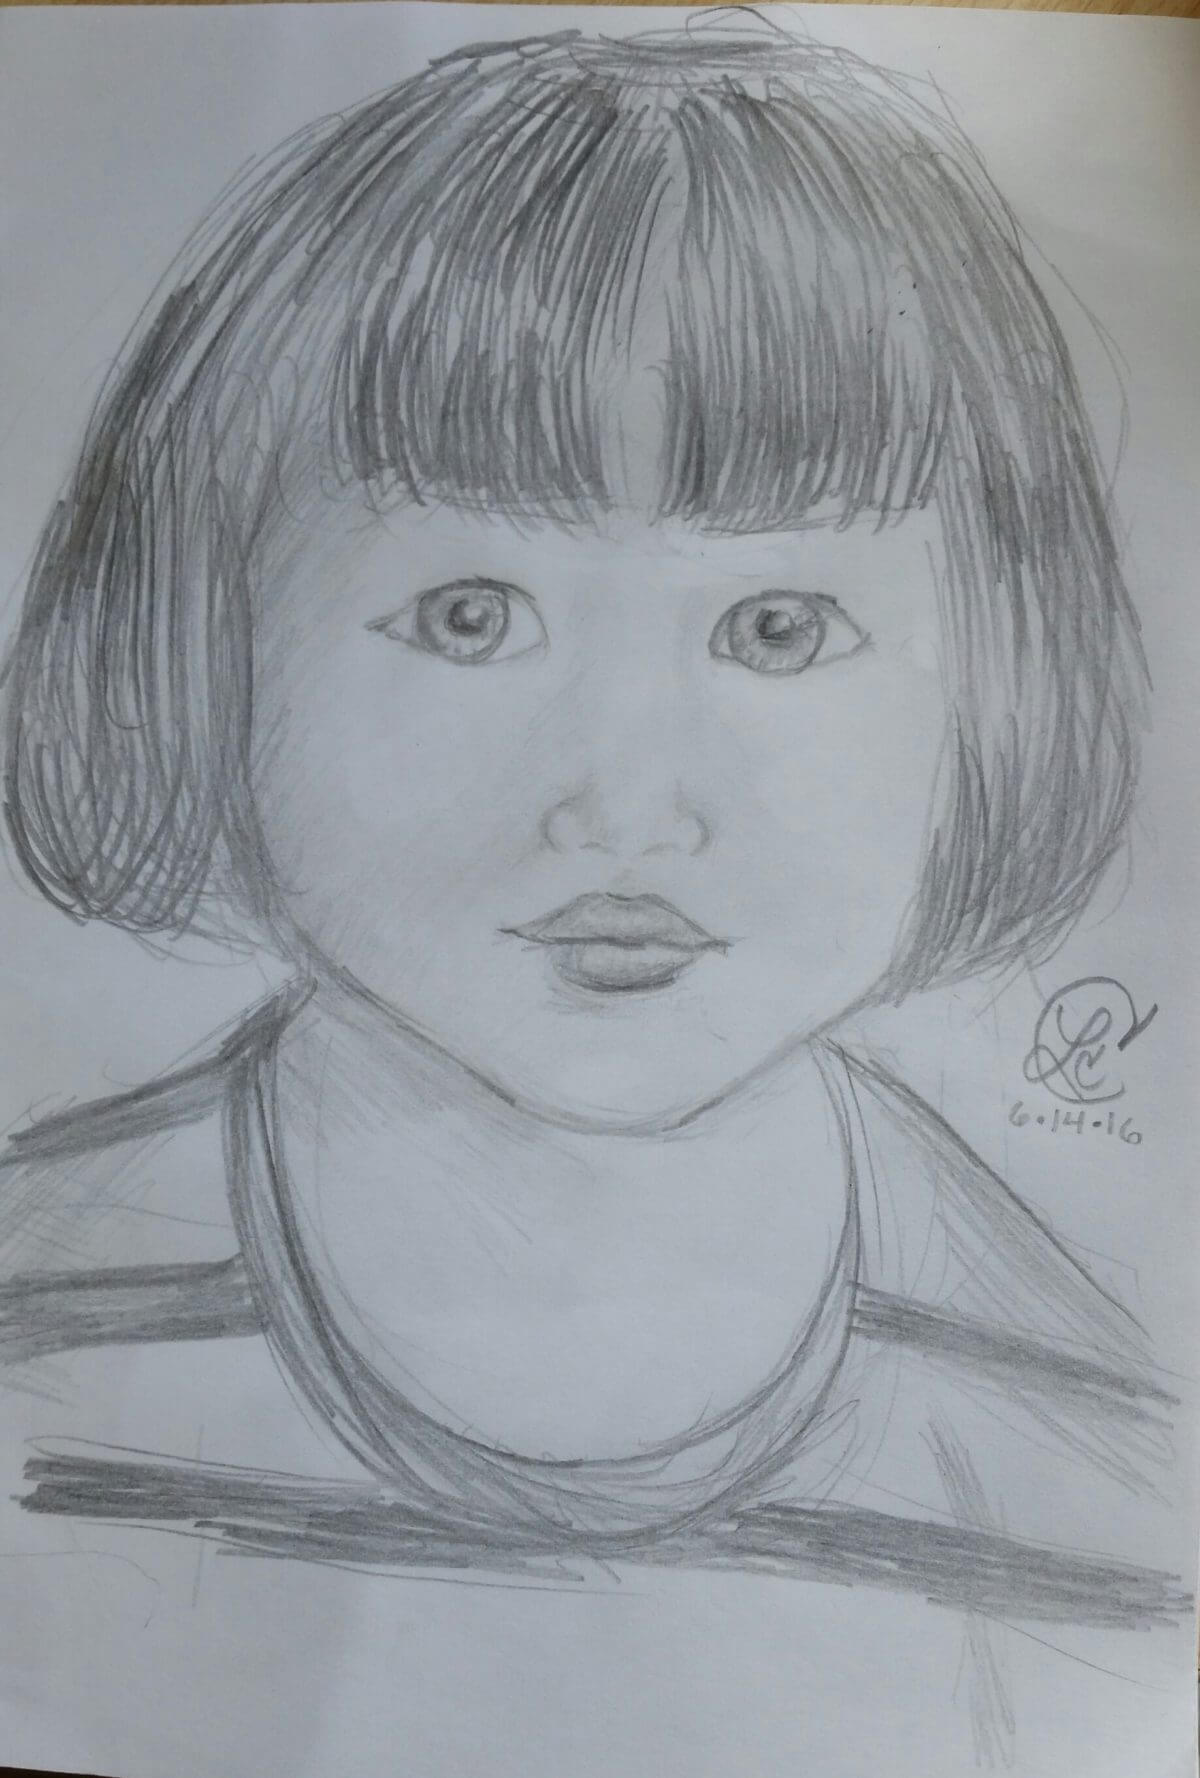 Welcome Aboard drawing of a little girl's face